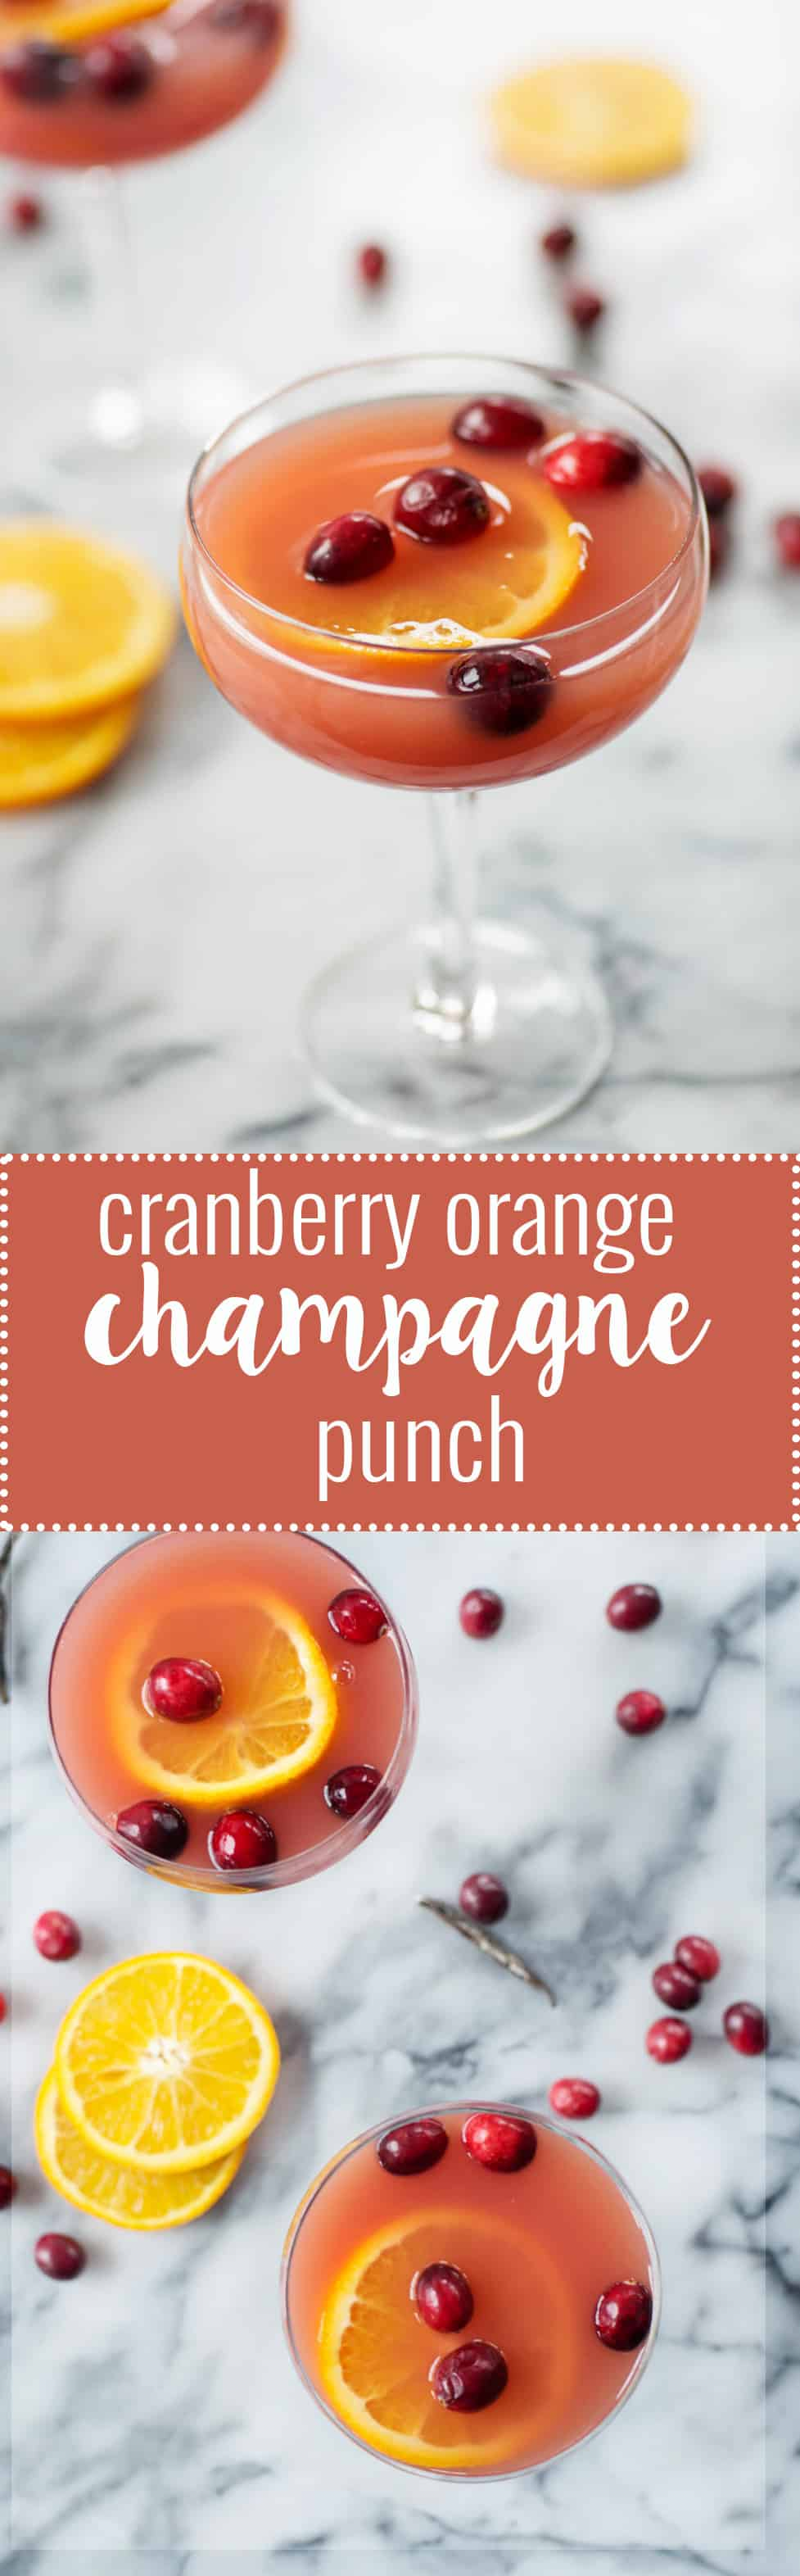 Cranberry Orange Champagne Punch! The gorgeous punch is a must for your holiday table. Refreshing, sparkling and festive! | www.delishknowledge.com